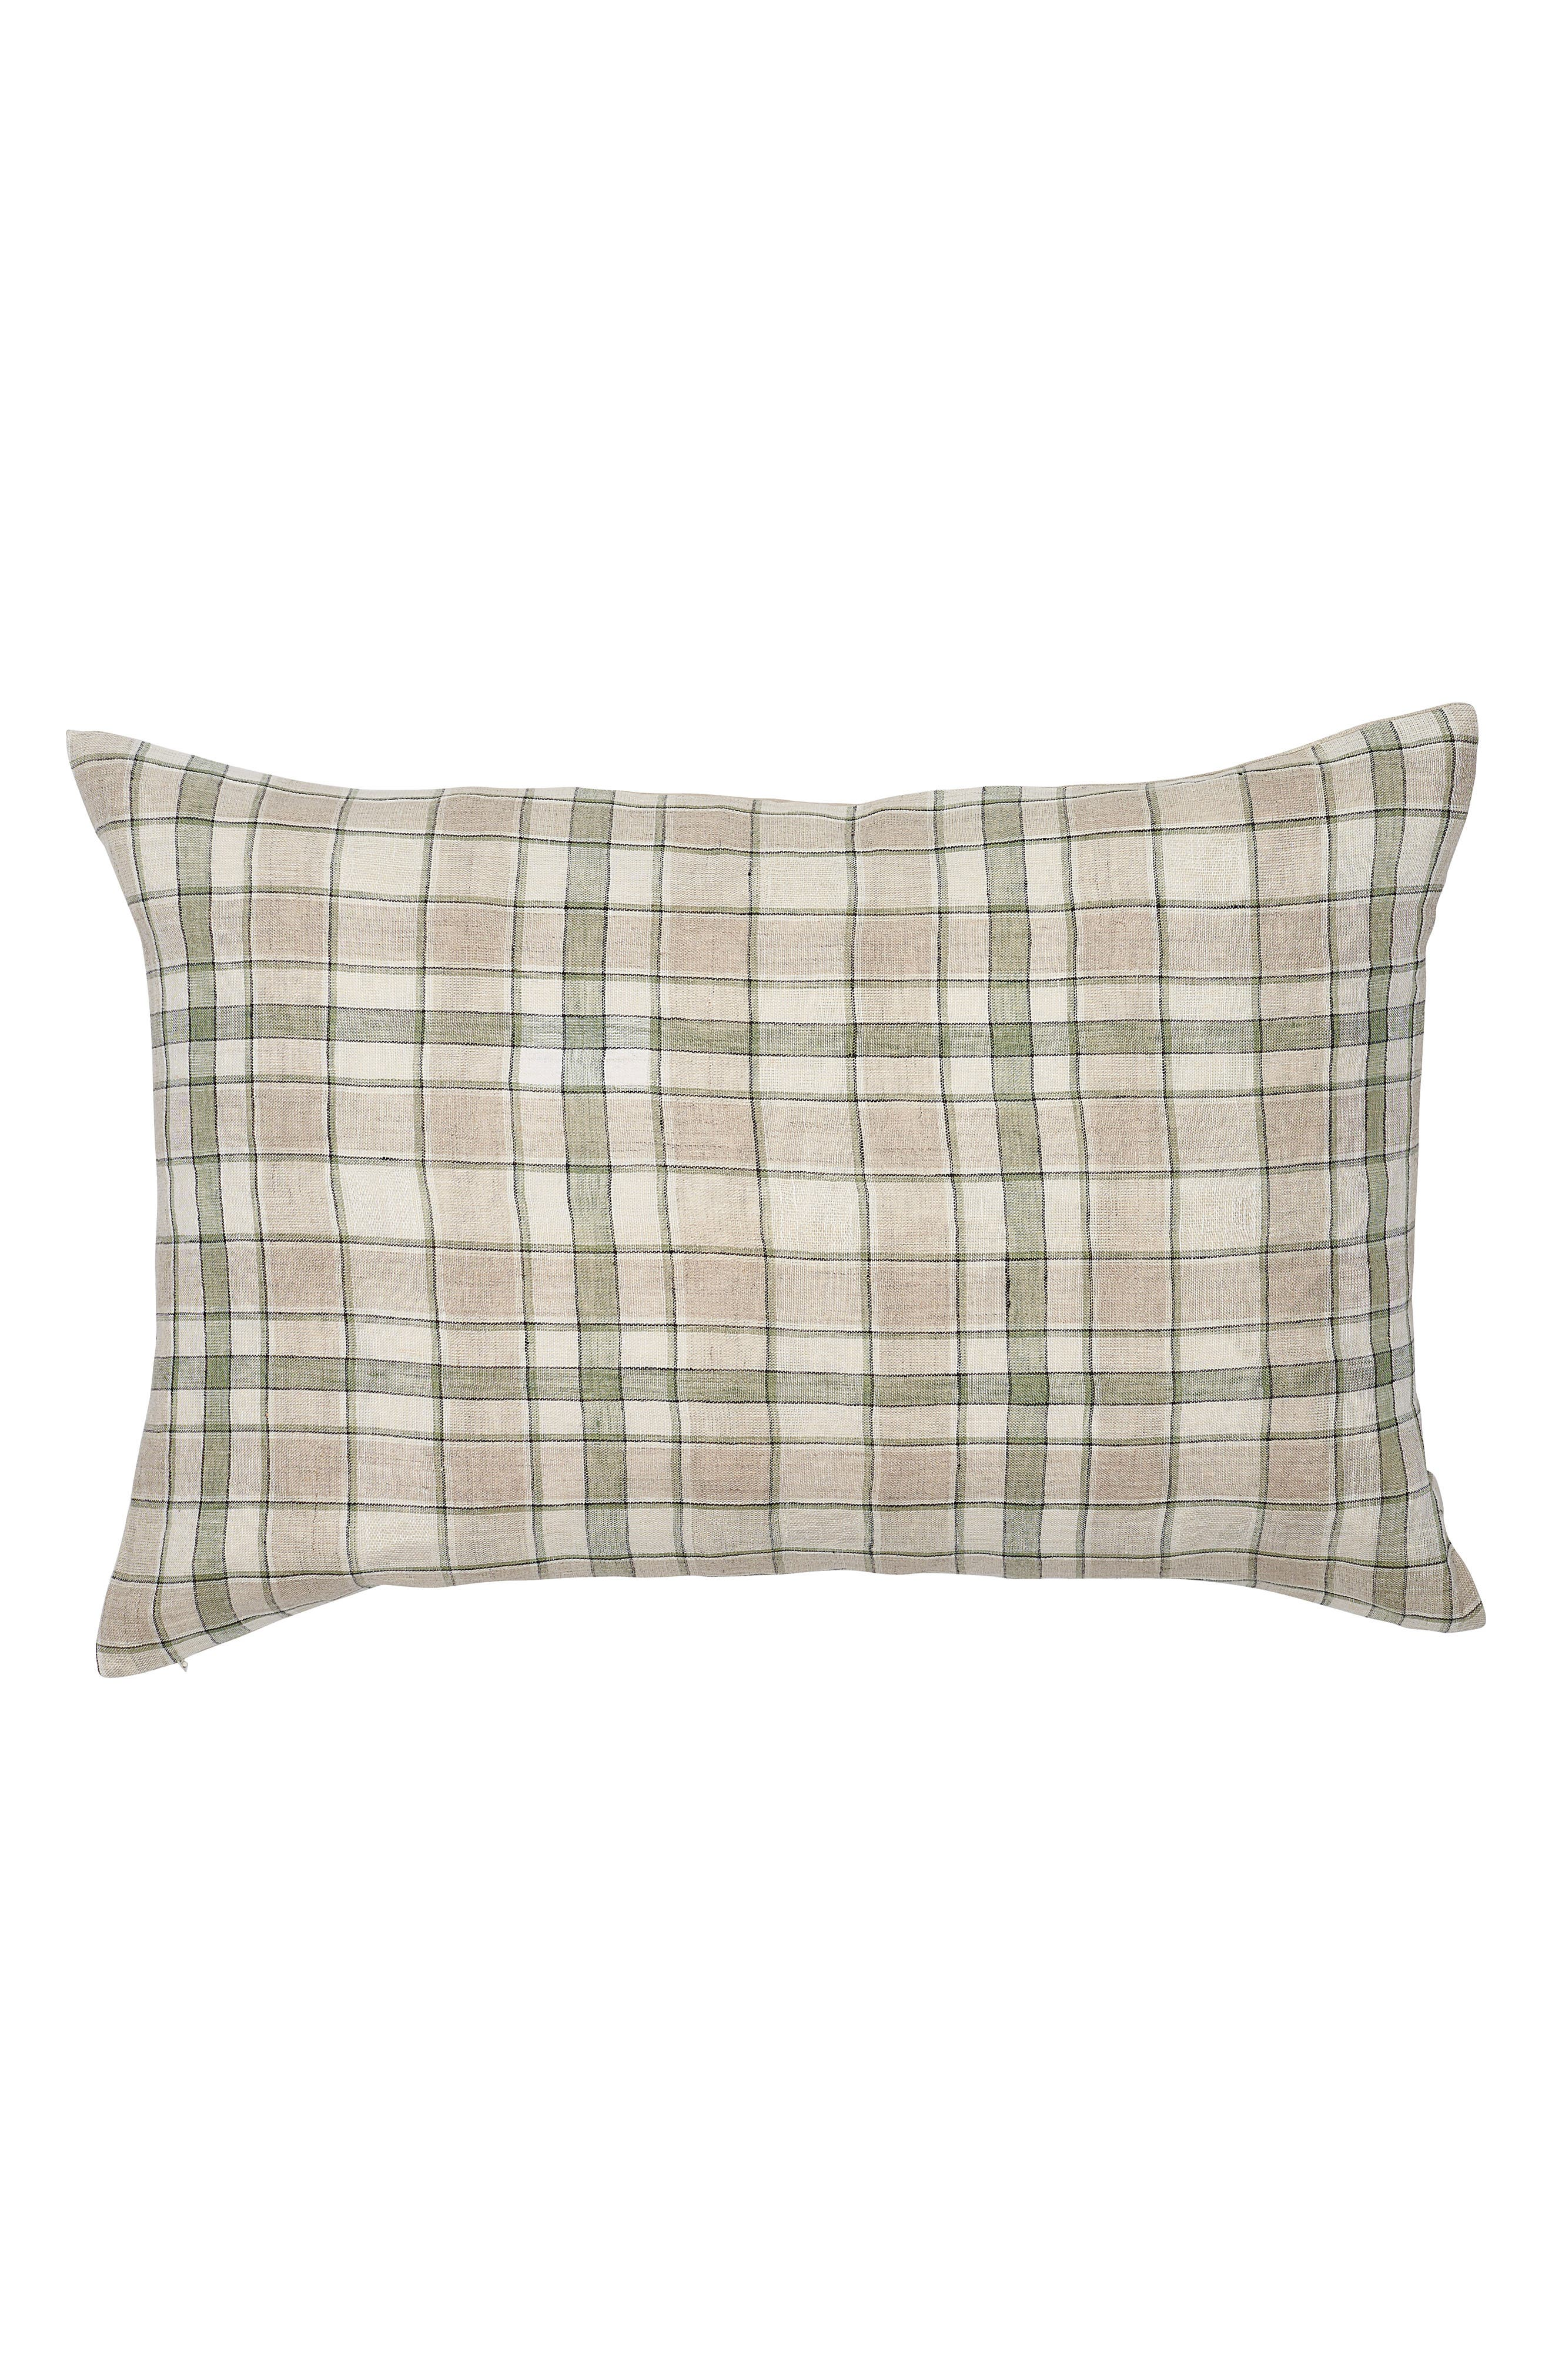 EADIE LIFESTYLE Caddy Scatter Accent Pillow, Main, color, SAGE MULTI